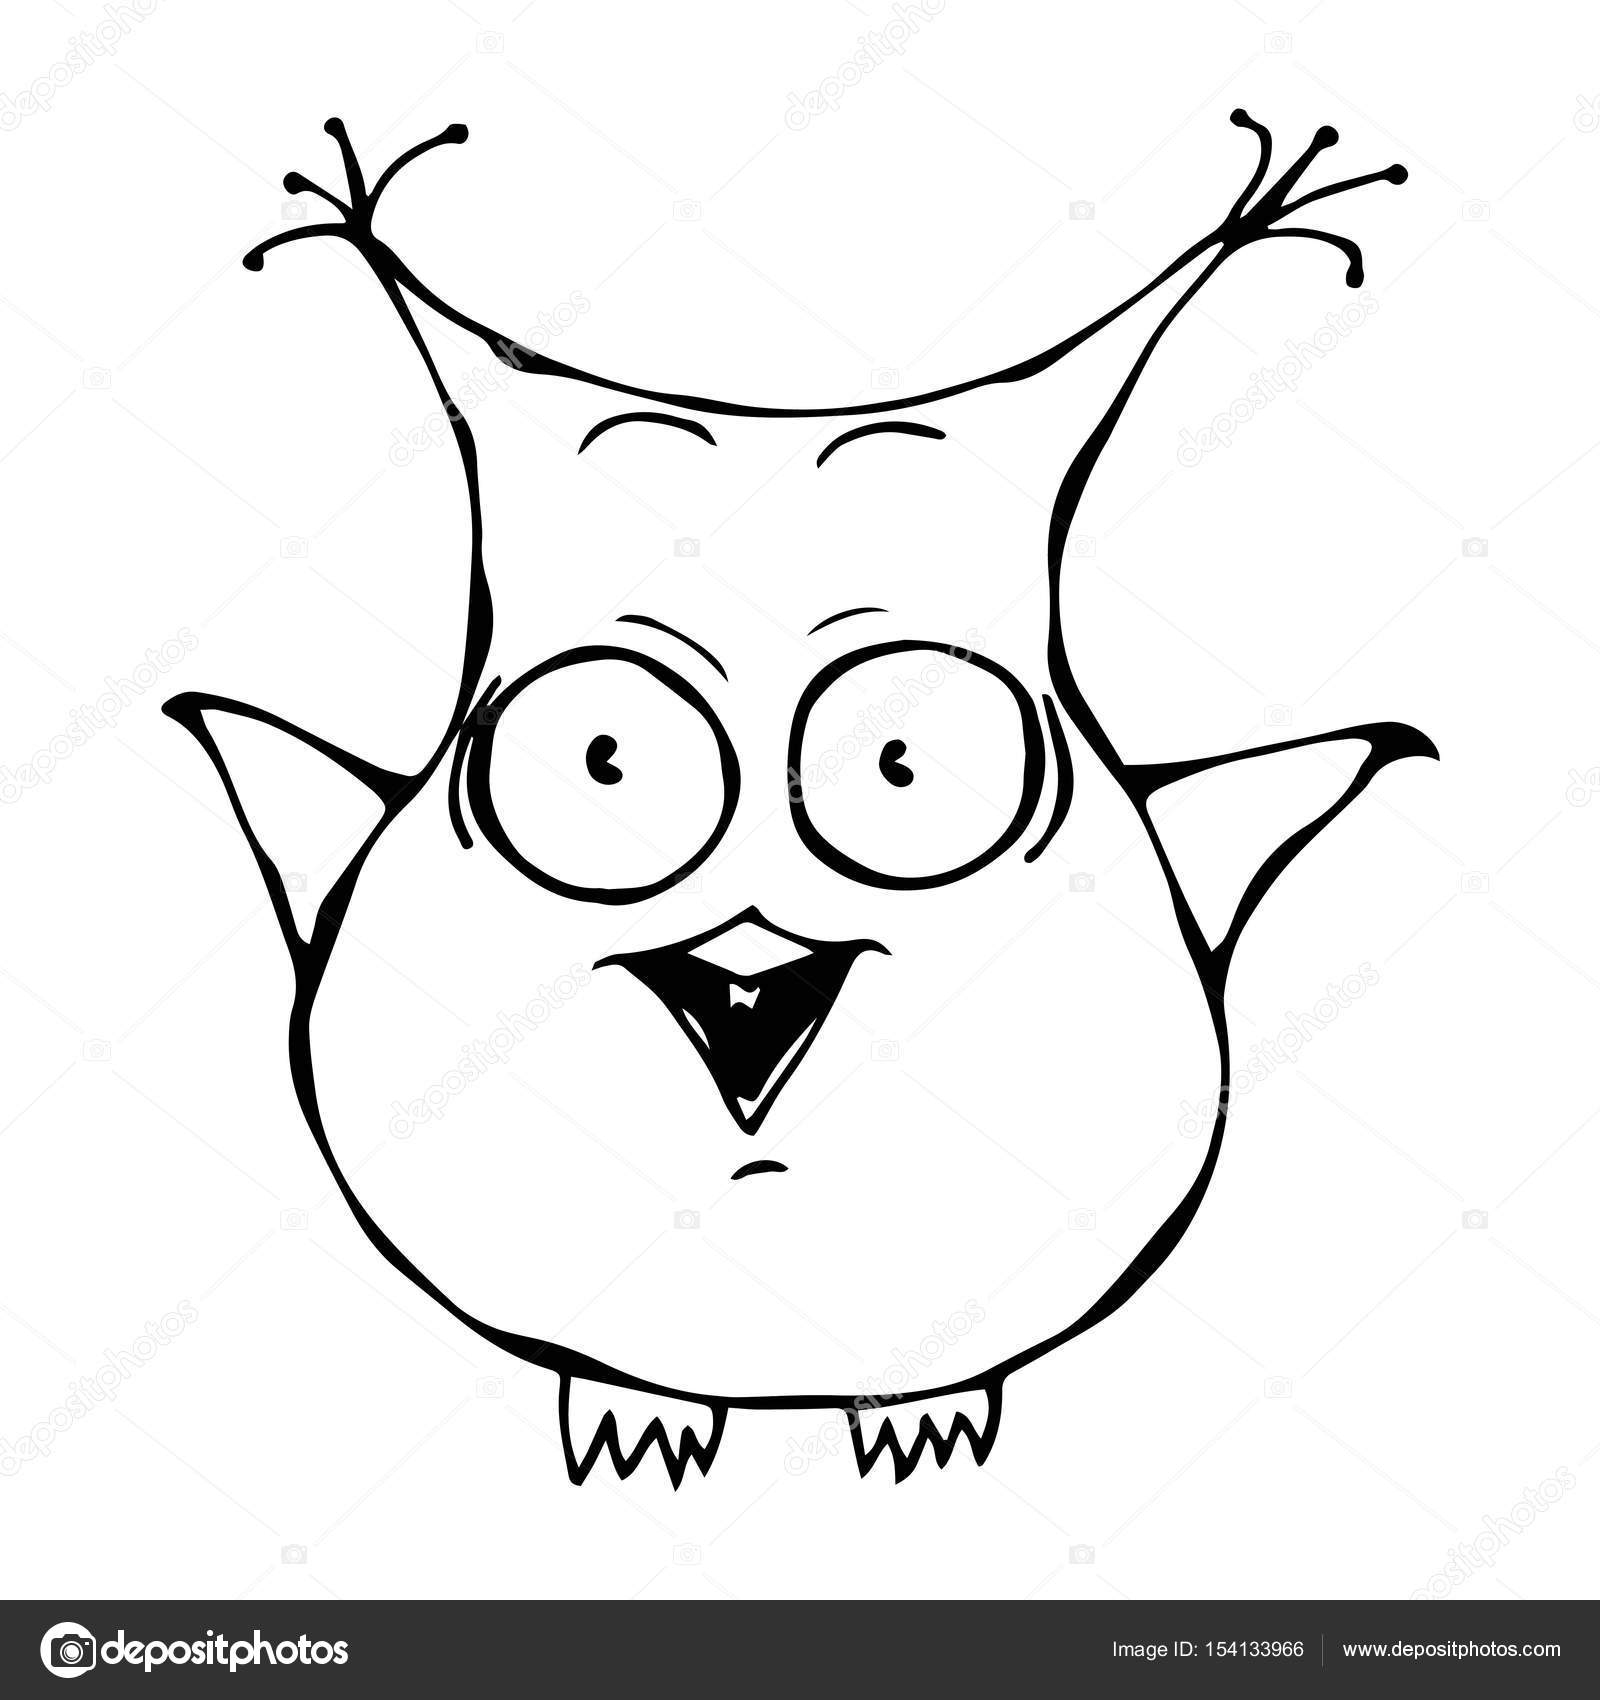 1600x1700 Cute Funny Scared Crazy Mad Insane Owl Bird Isolated On A White